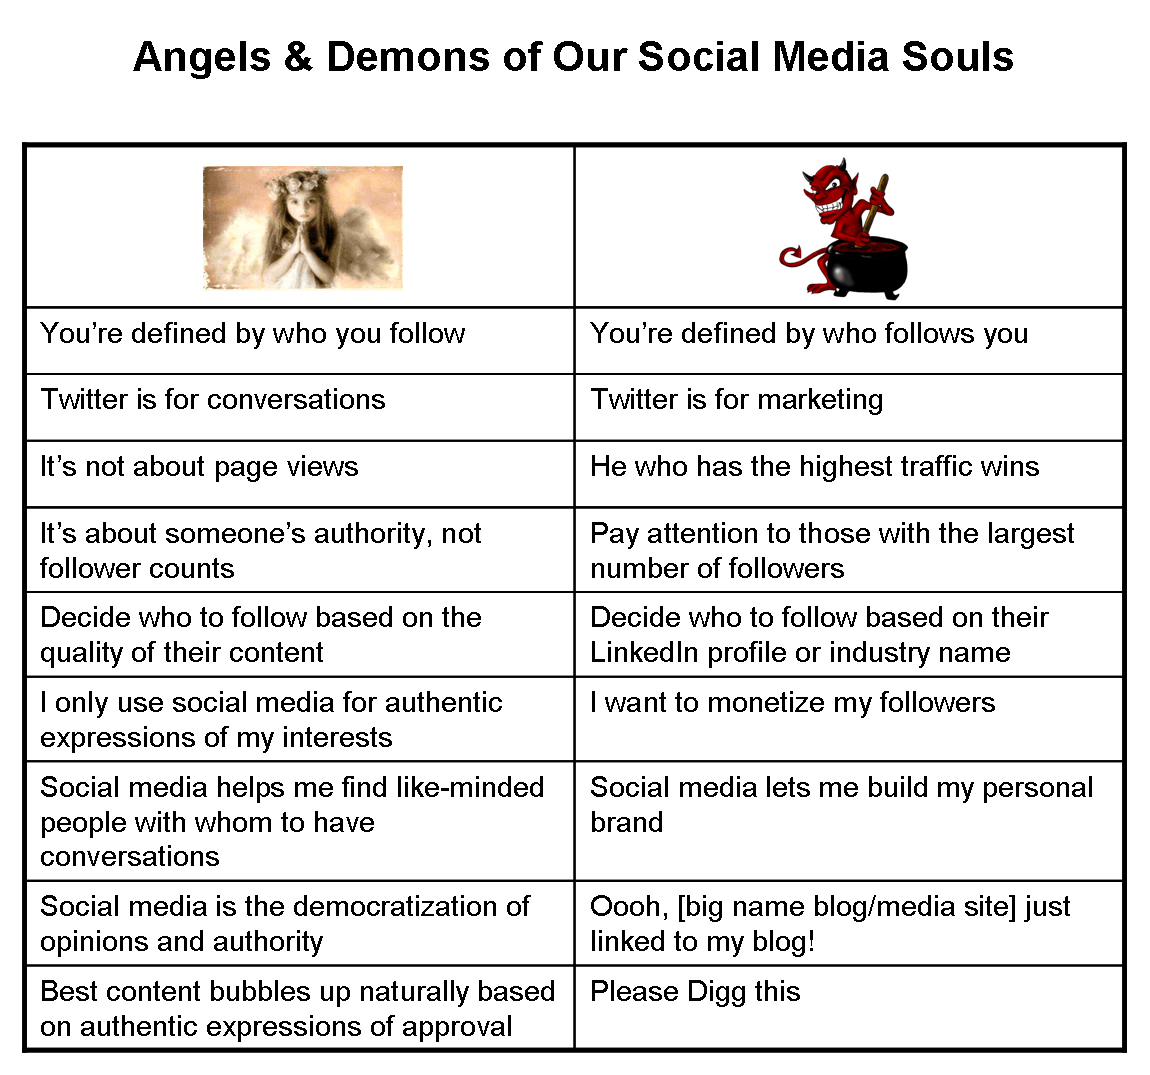 angels-and-demons-of-our-social-media-souls